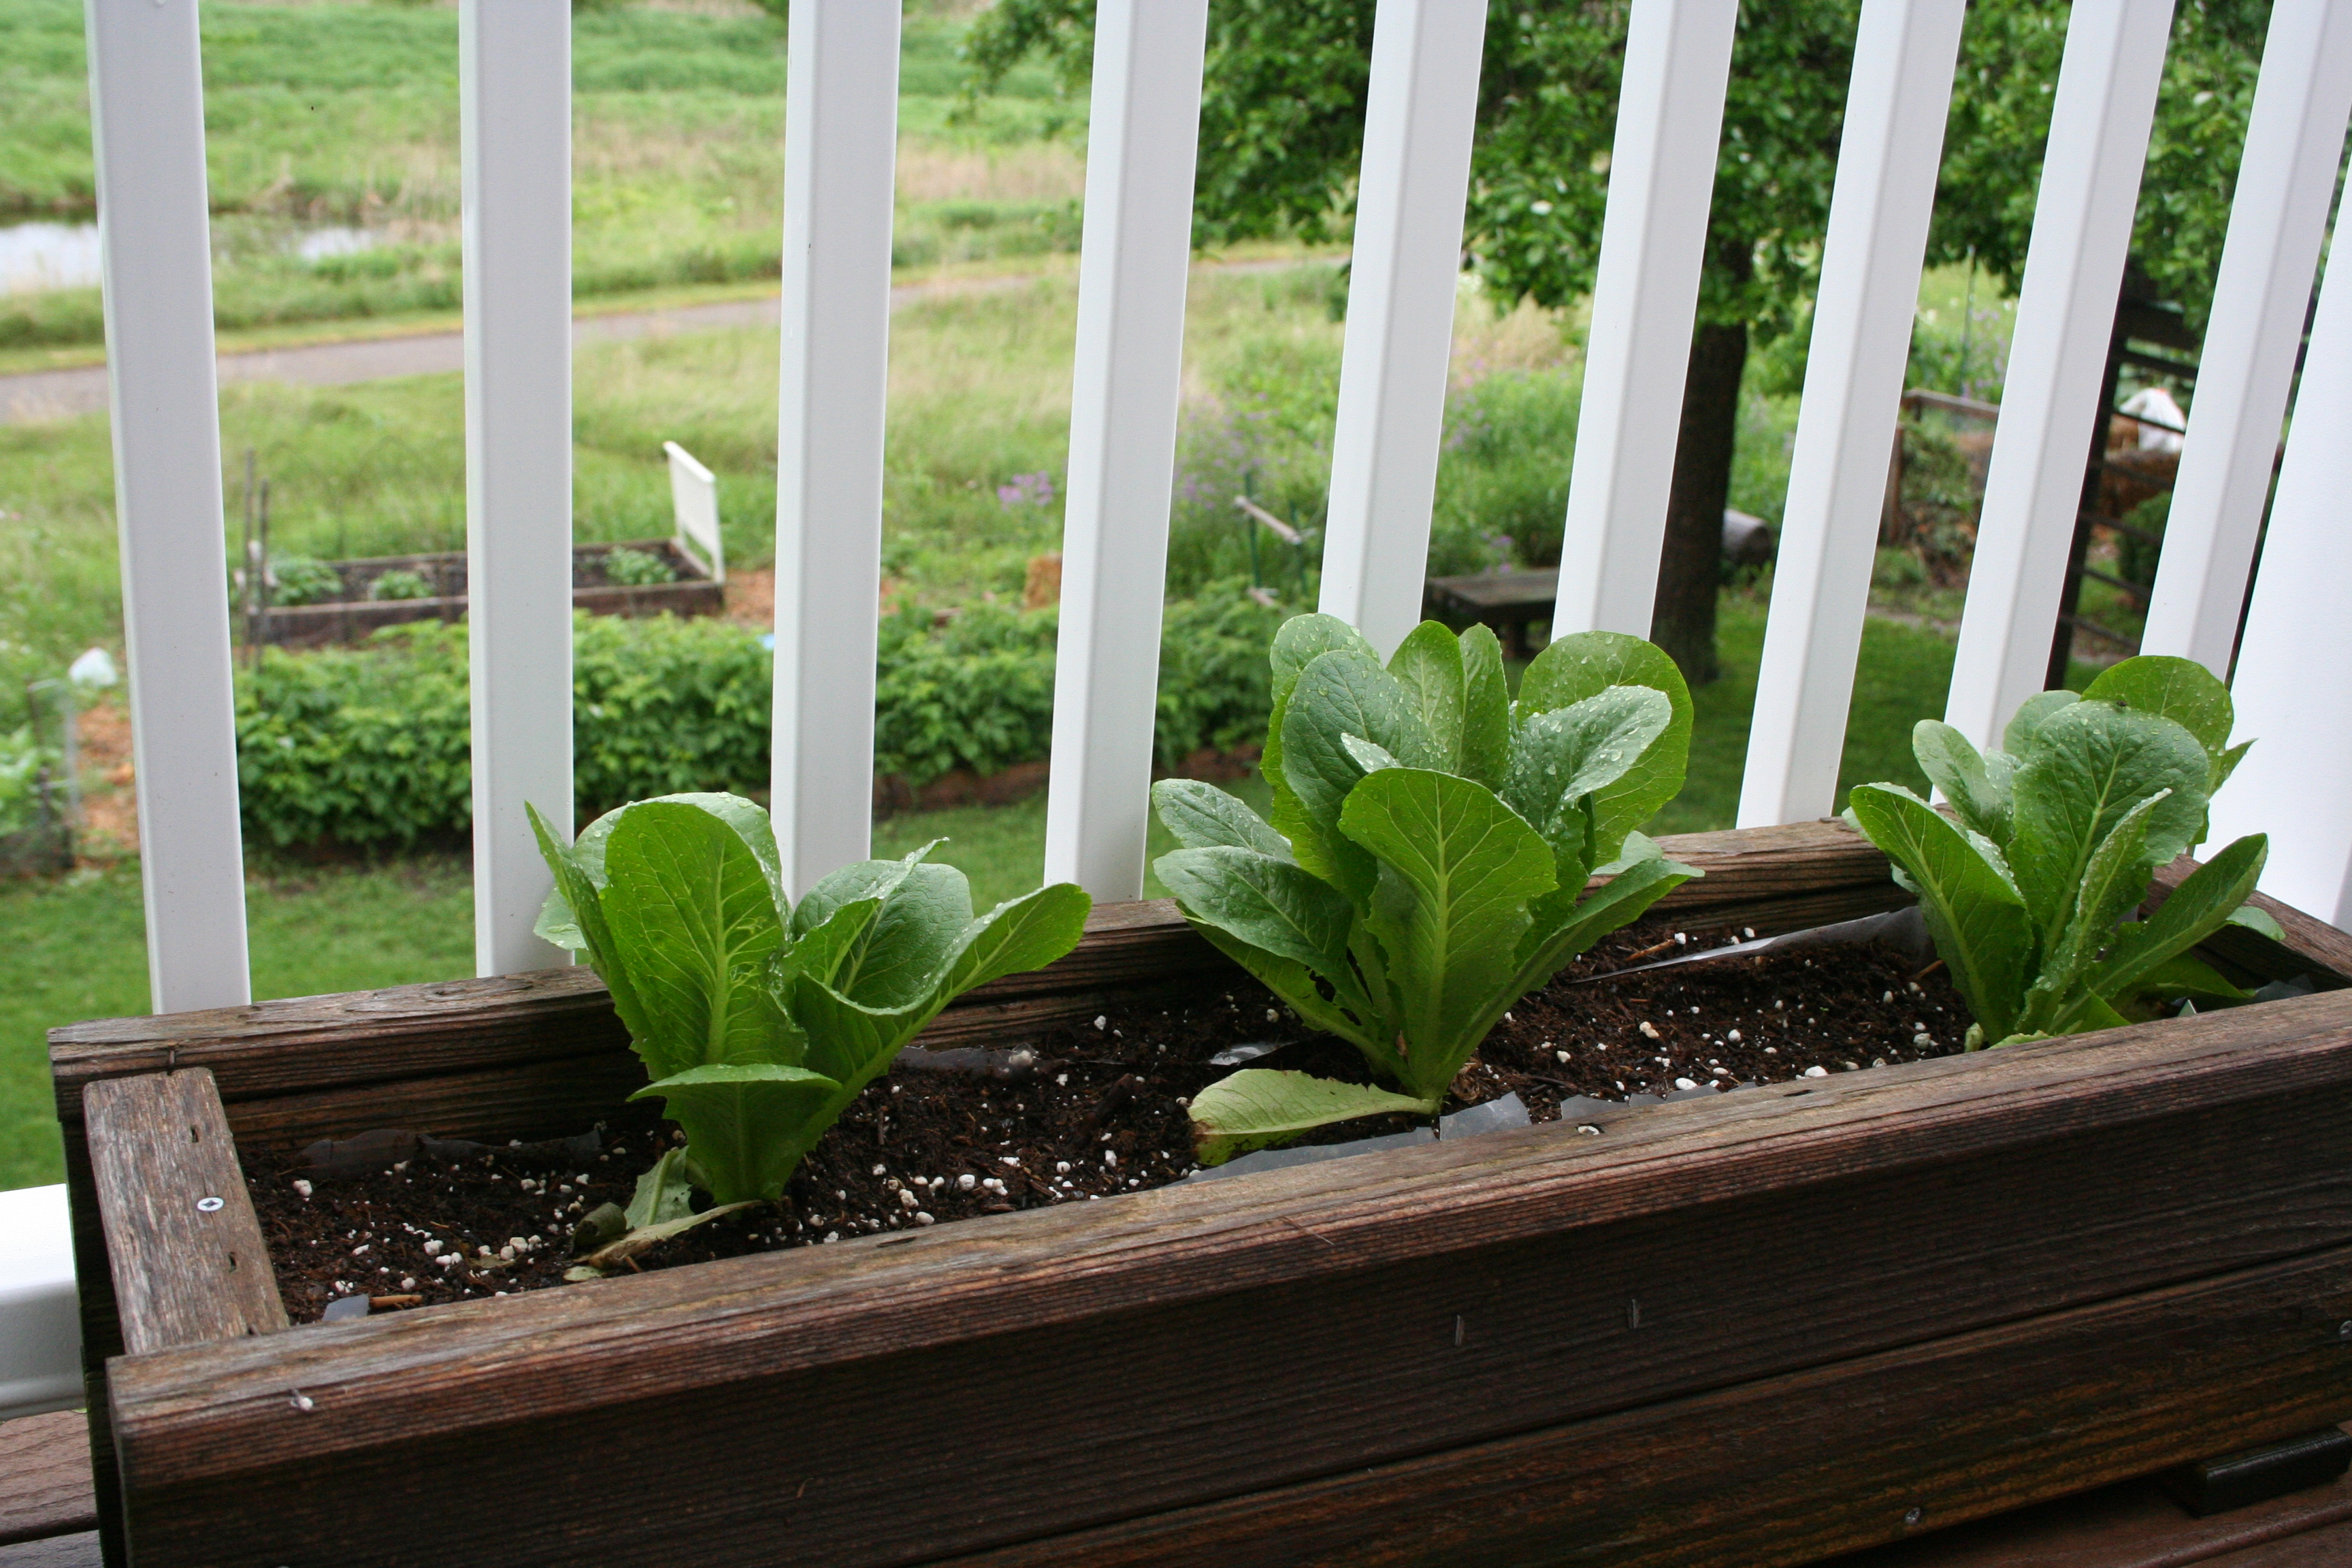 Deck Garden Ideas garden design with welcome to above ground farming journal with hgtv landscaping shows from abovegroundfarming Deck Vegetable Garden Is Looking Good